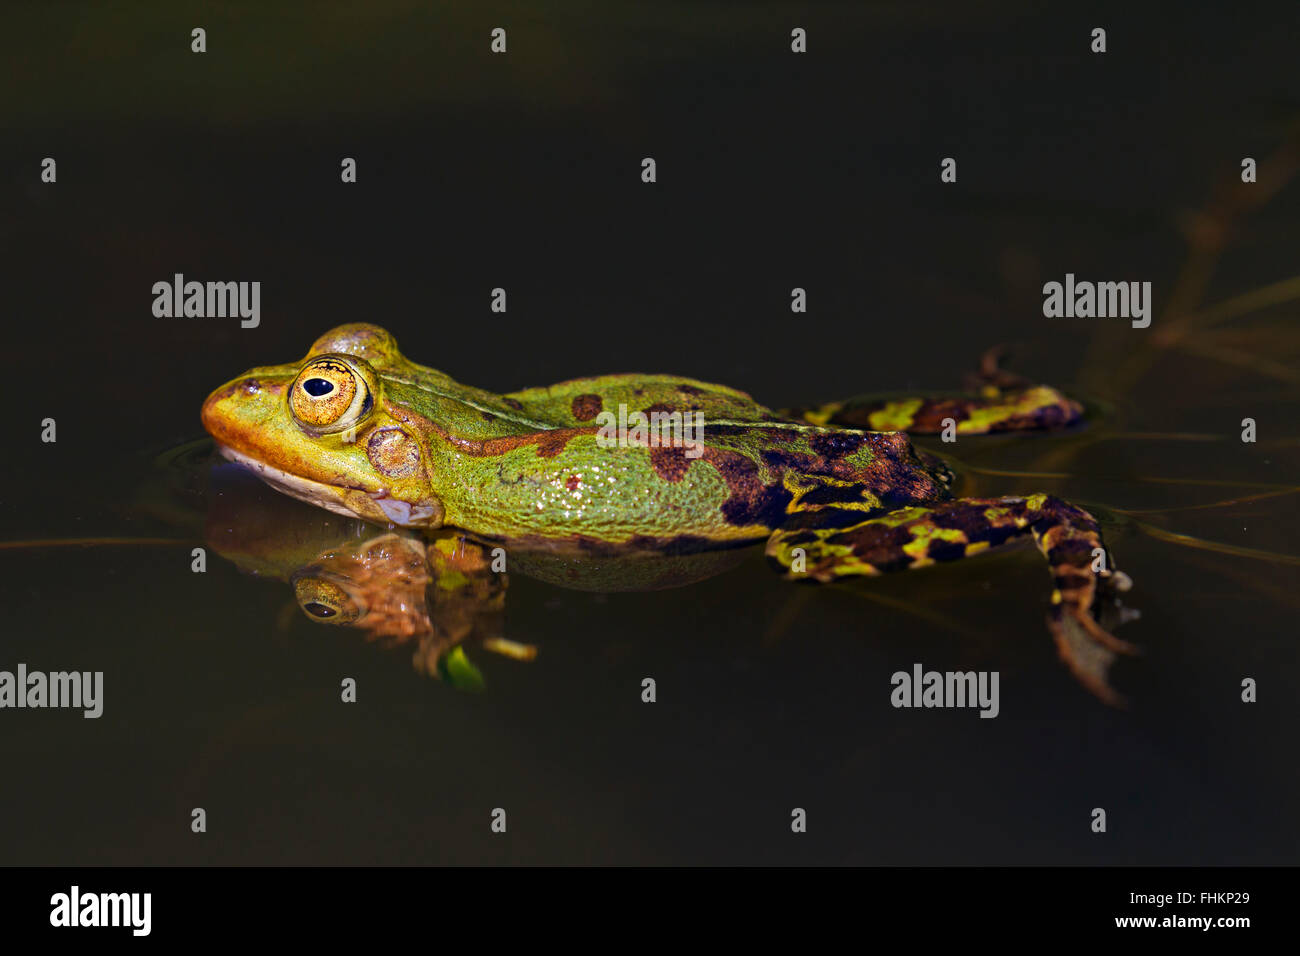 Edible frog / common water frog / green frog (Pelophylax kl. esculentus / Rana kl. esculenta) swimming in pond - Stock Image